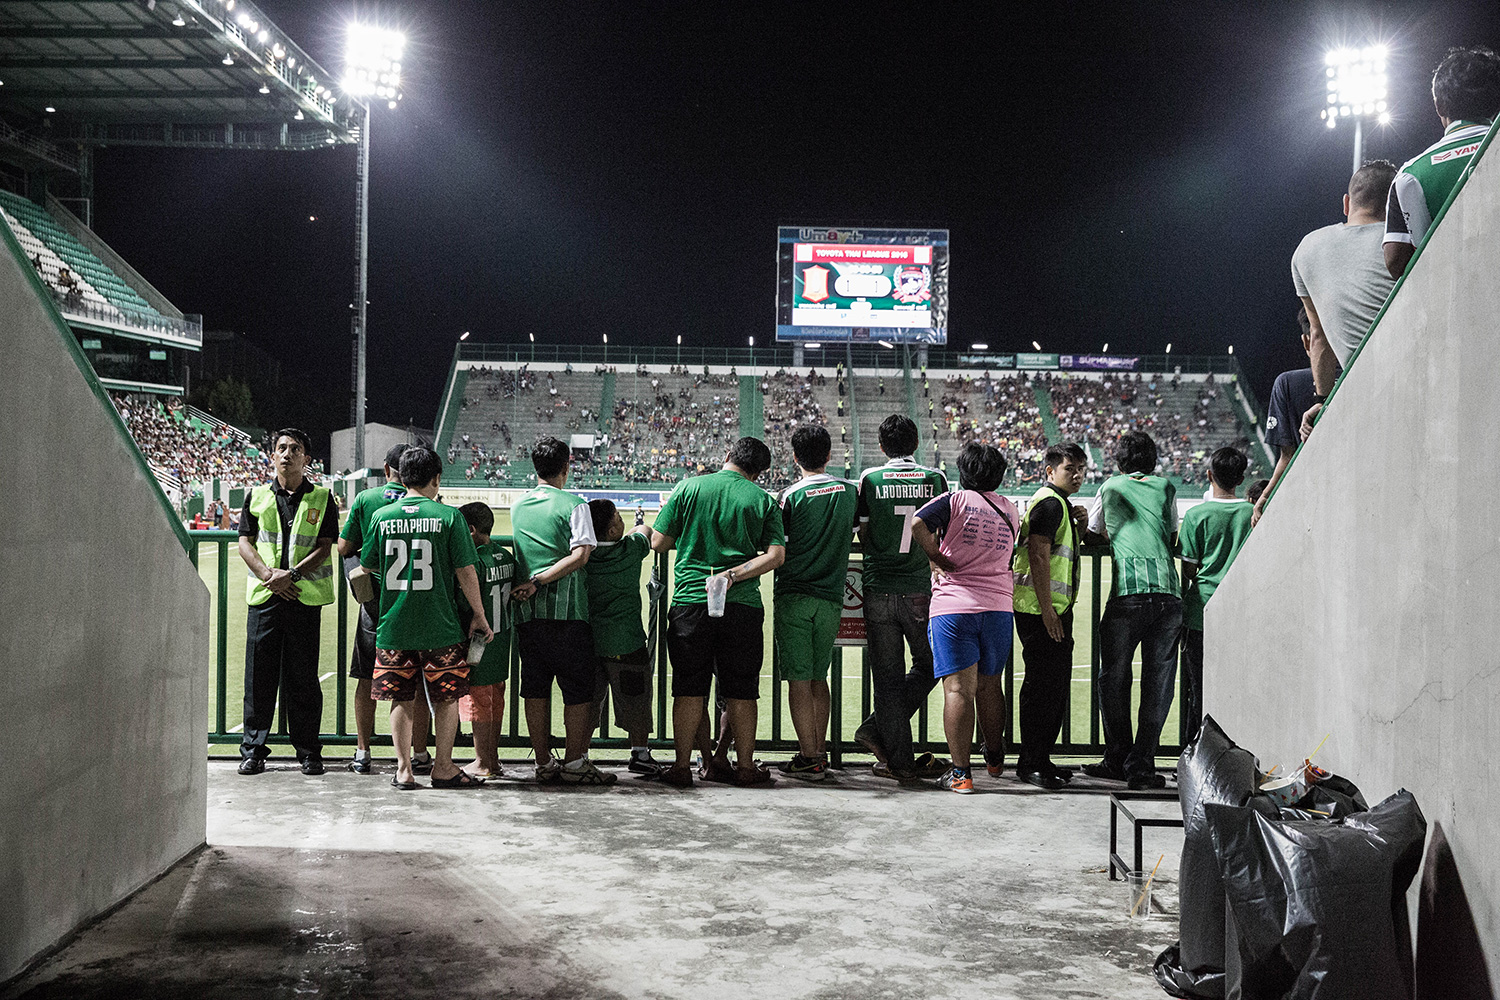 bangkokglass-vs-suphanburi-17